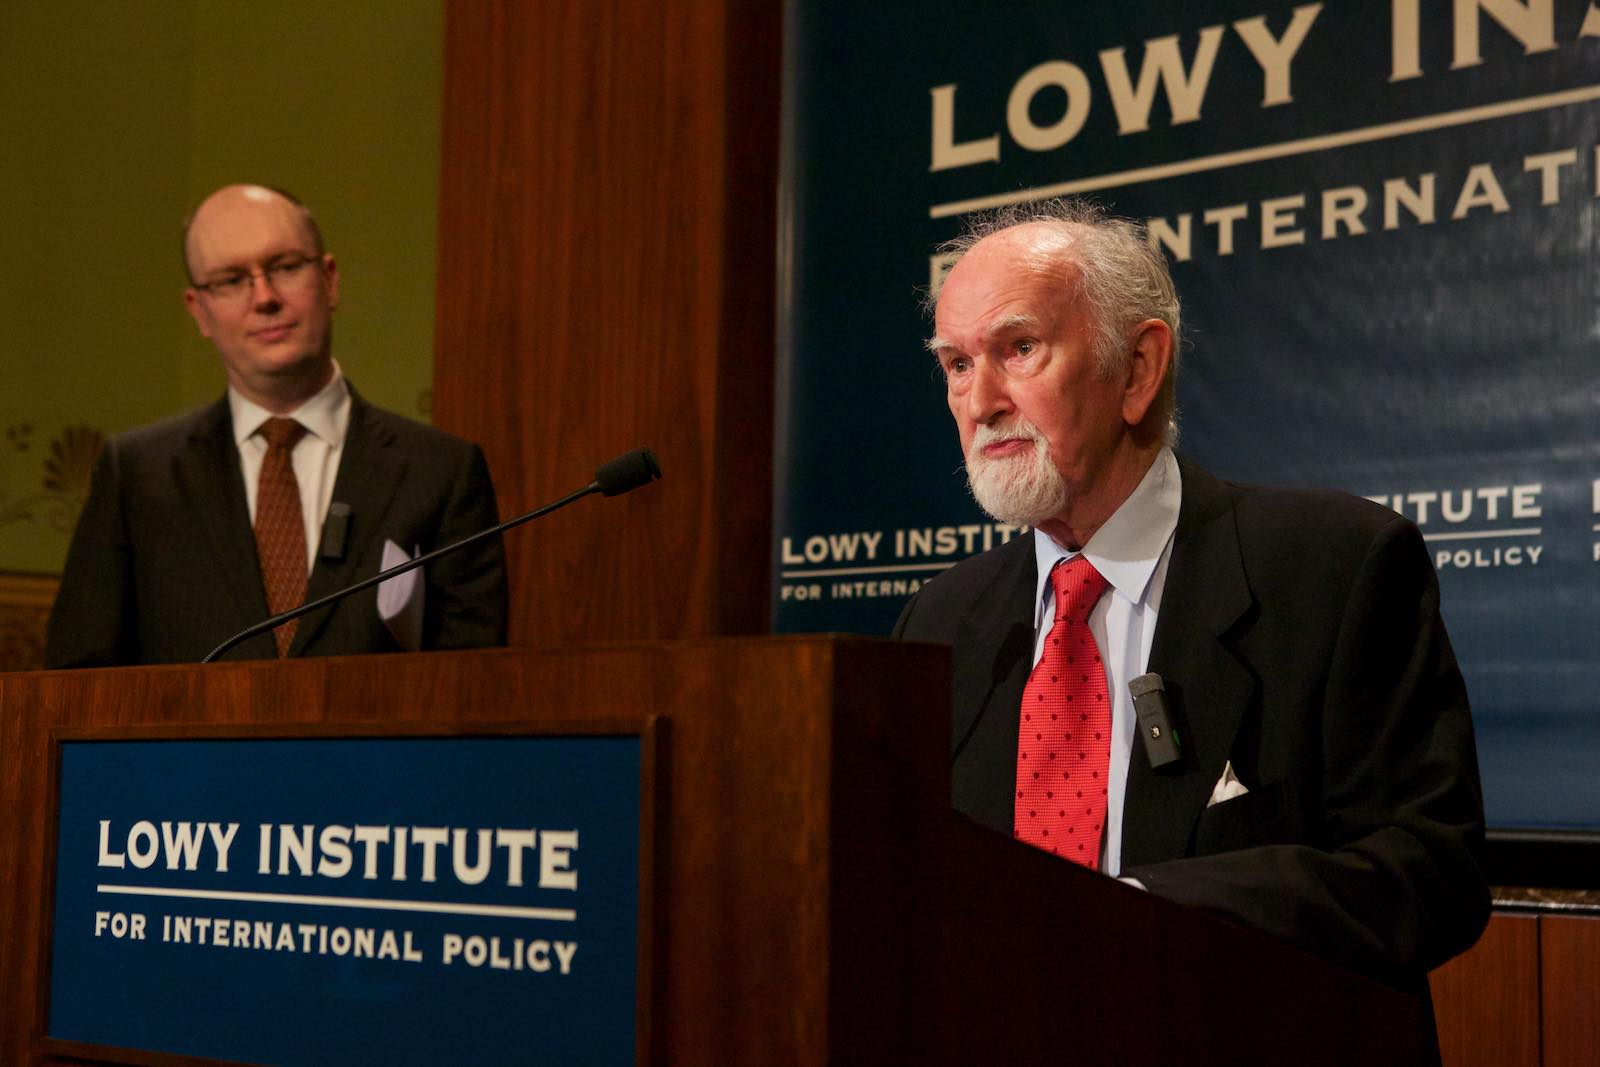 Owen Harries, with Michael Fullilove in the background, introducing the 2013 Owen Harries Lecture.